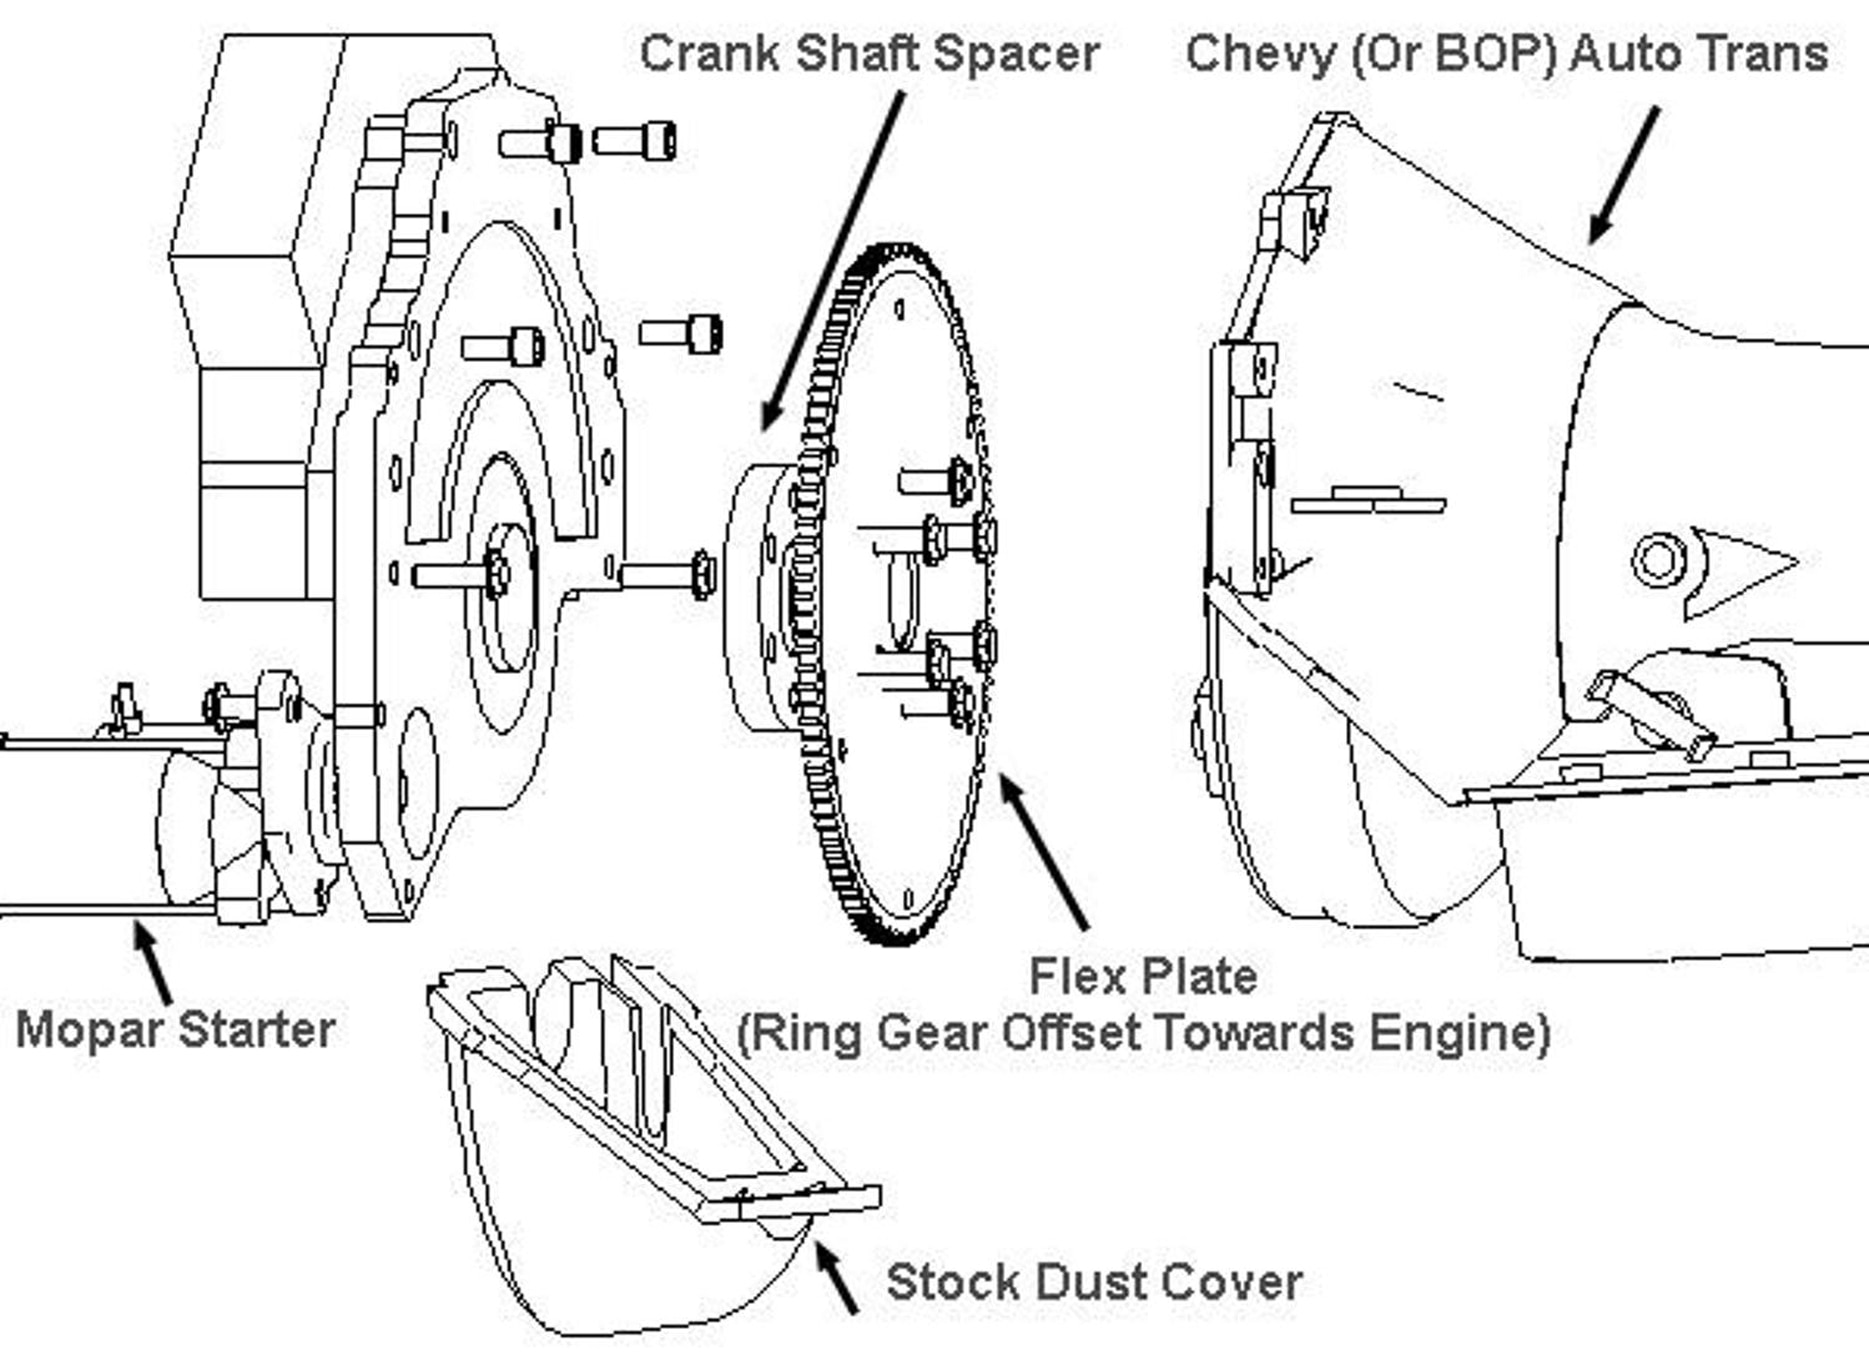 Cute turbo 400 transmission wiring chain hoist wiring diagram for